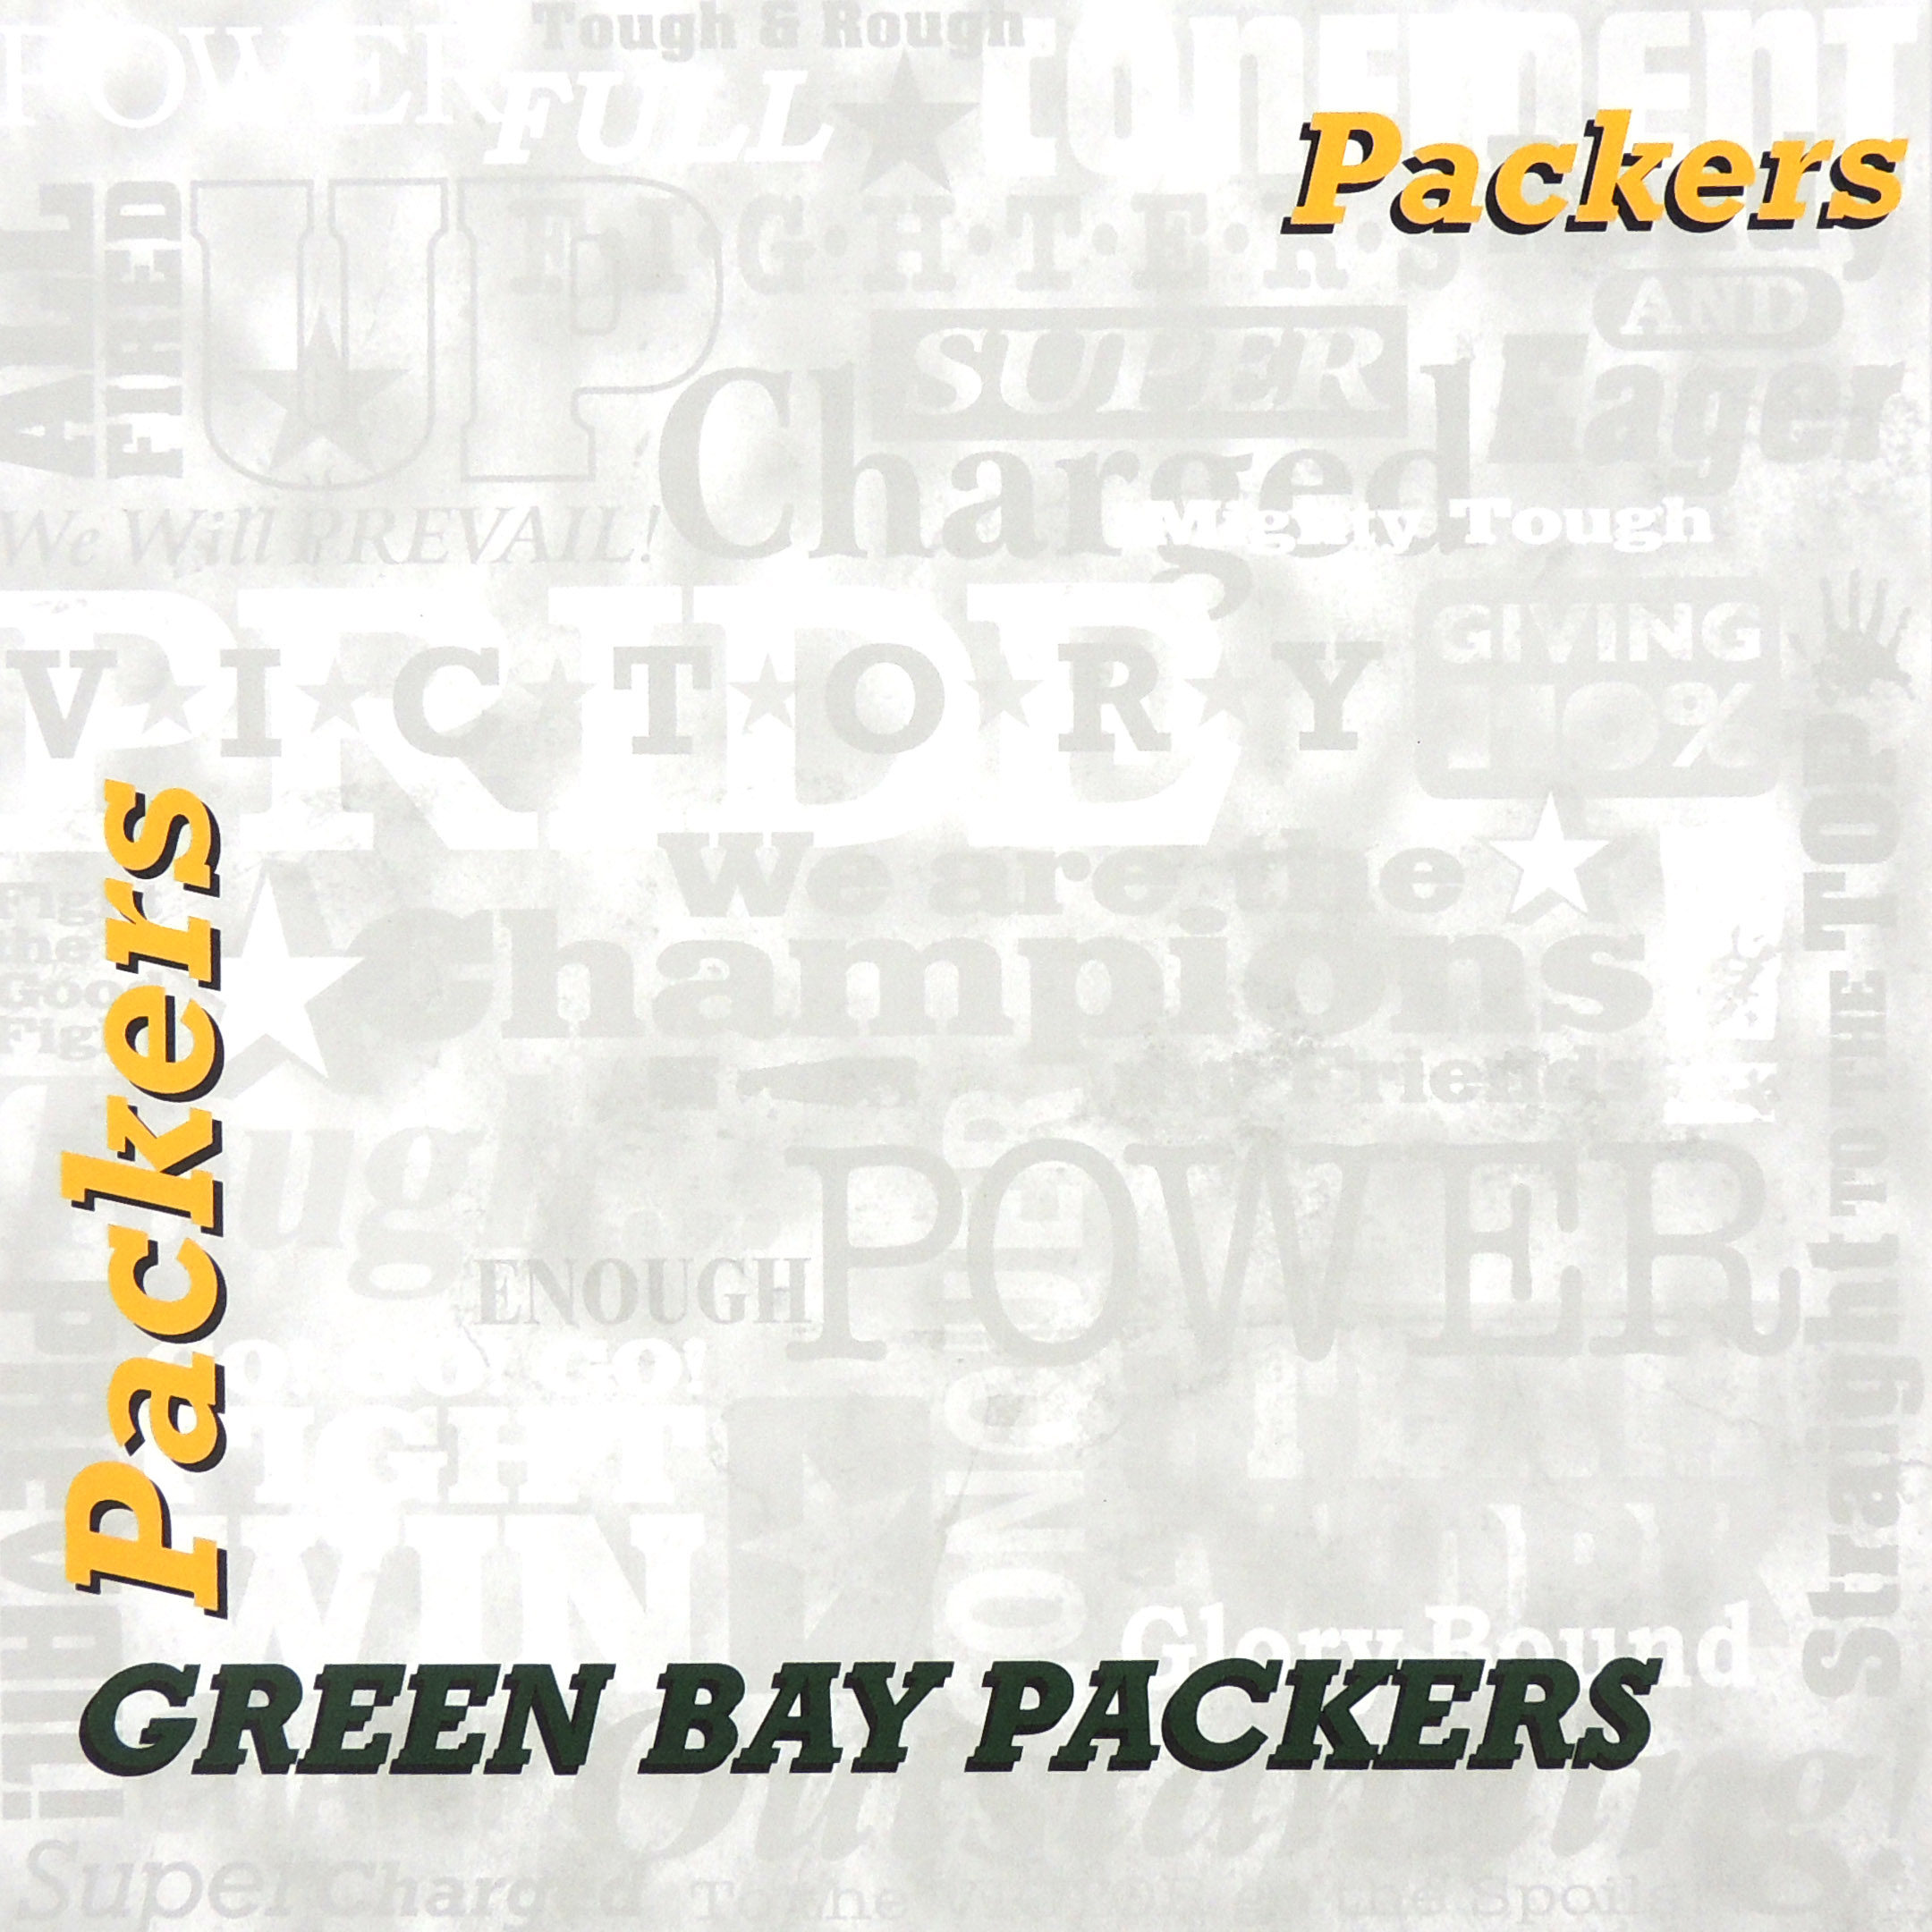 GREEN BAY PACKERS SPIRIT WORDS PAPER